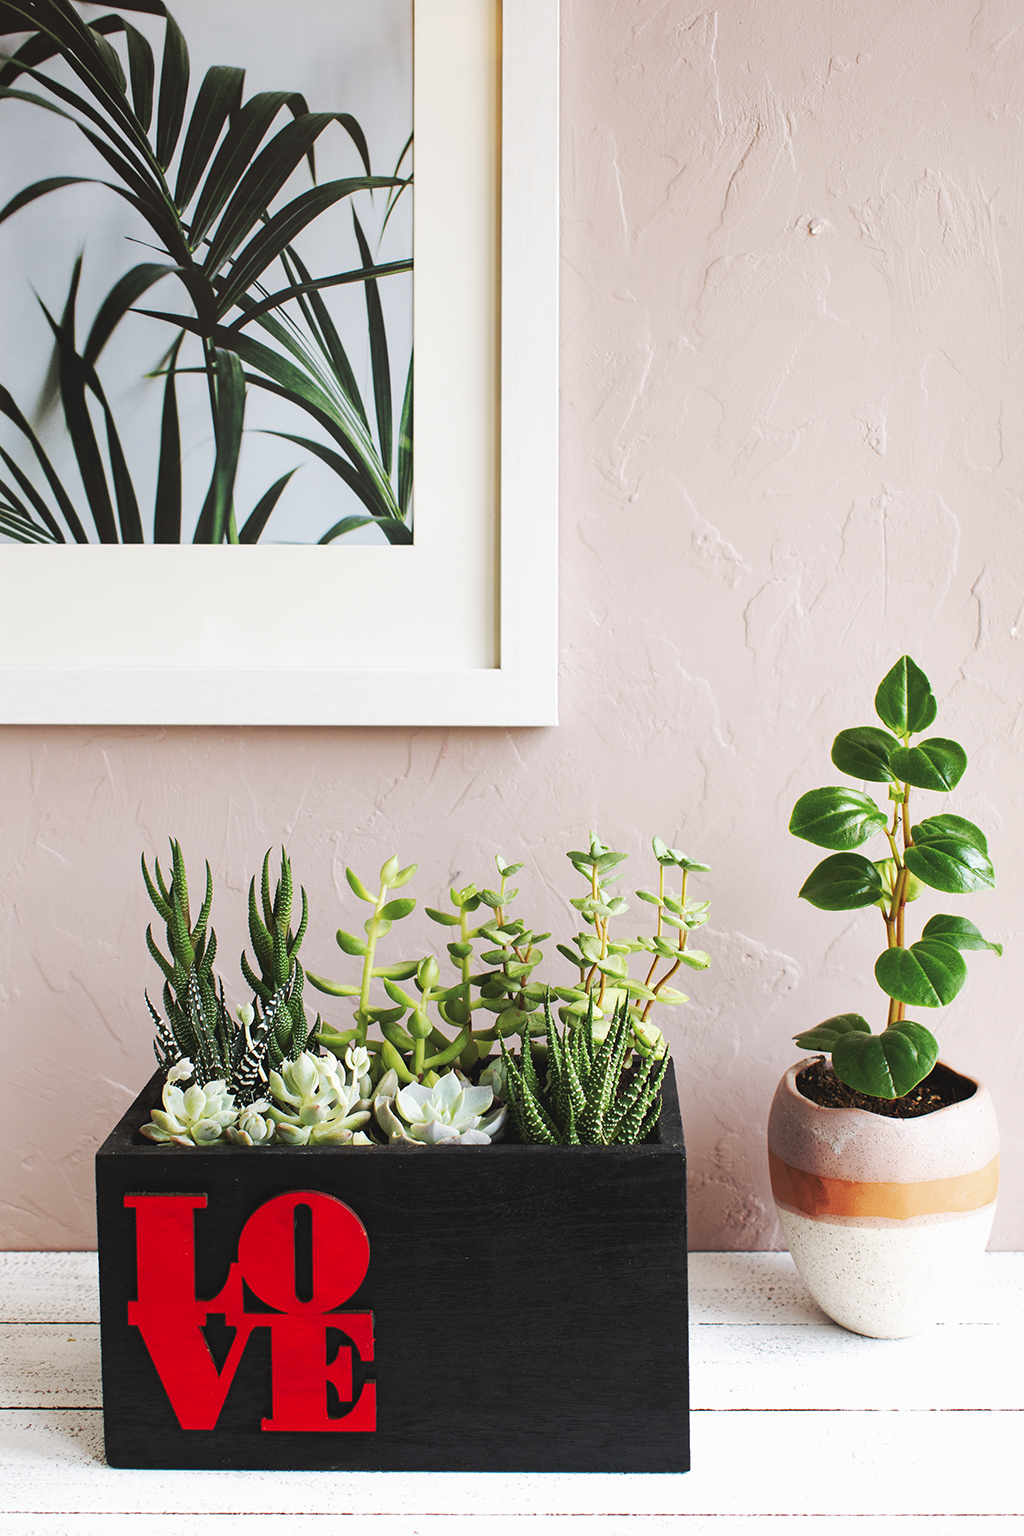 Love Planter - DIY Mini Succulent Garden via A Charming Project